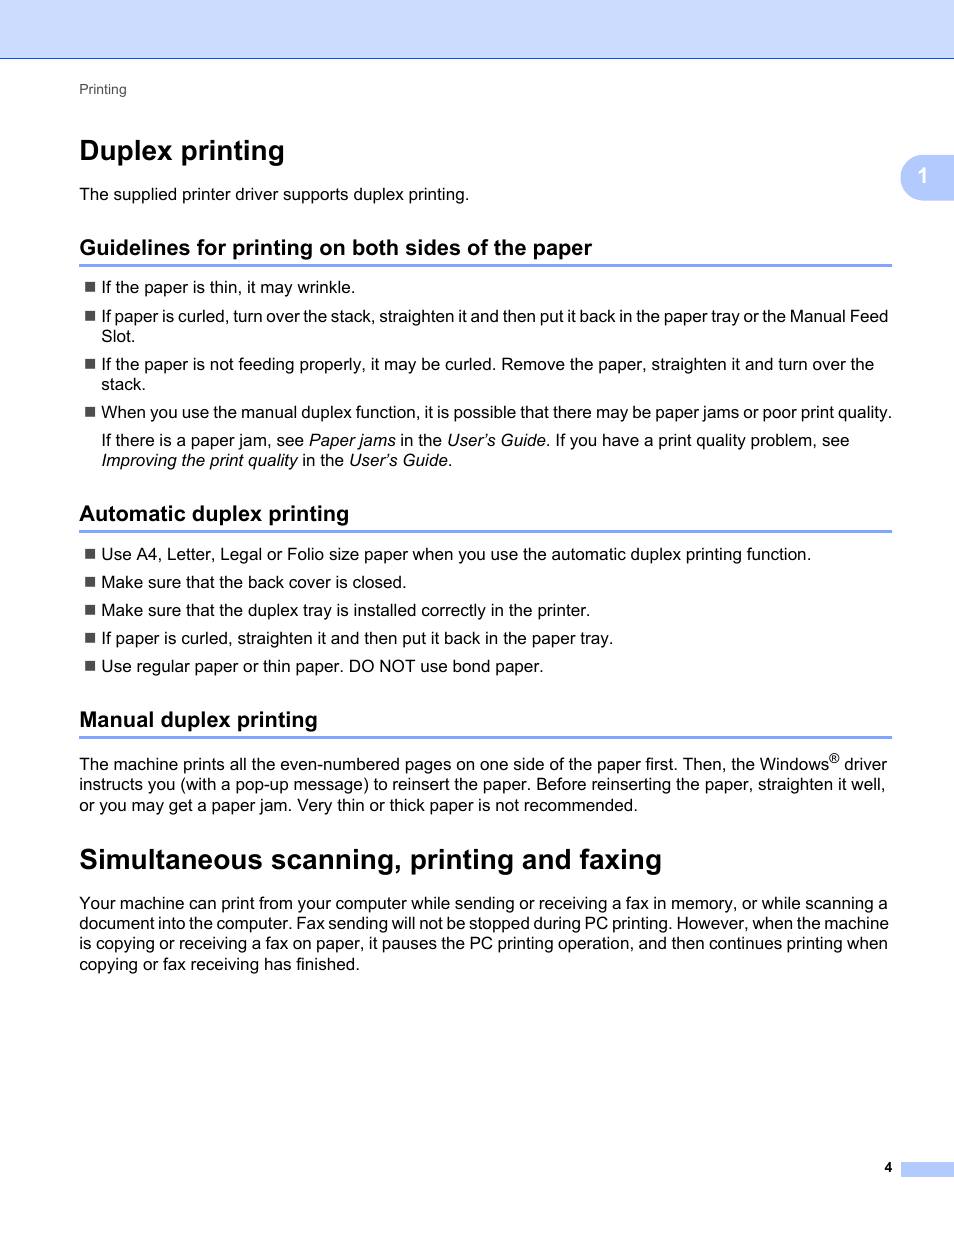 Duplex printing, Guidelines for printing on both sides of the paper,  Automatic duplex printing | Konica Minolta bizhub 20 User Manual | Page 12  / 227